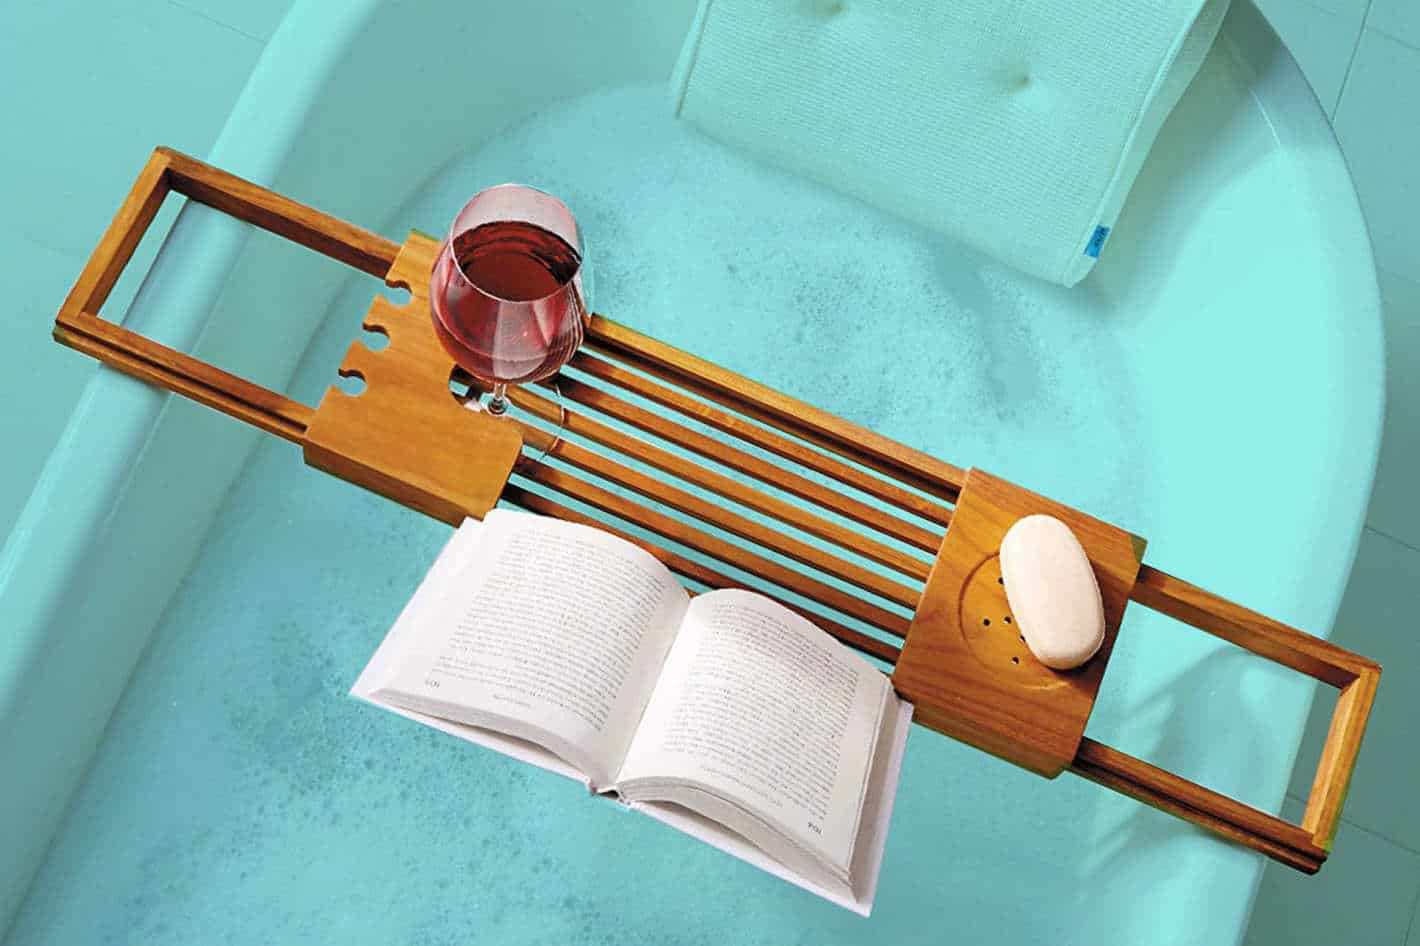 Bathtub Tray with Book